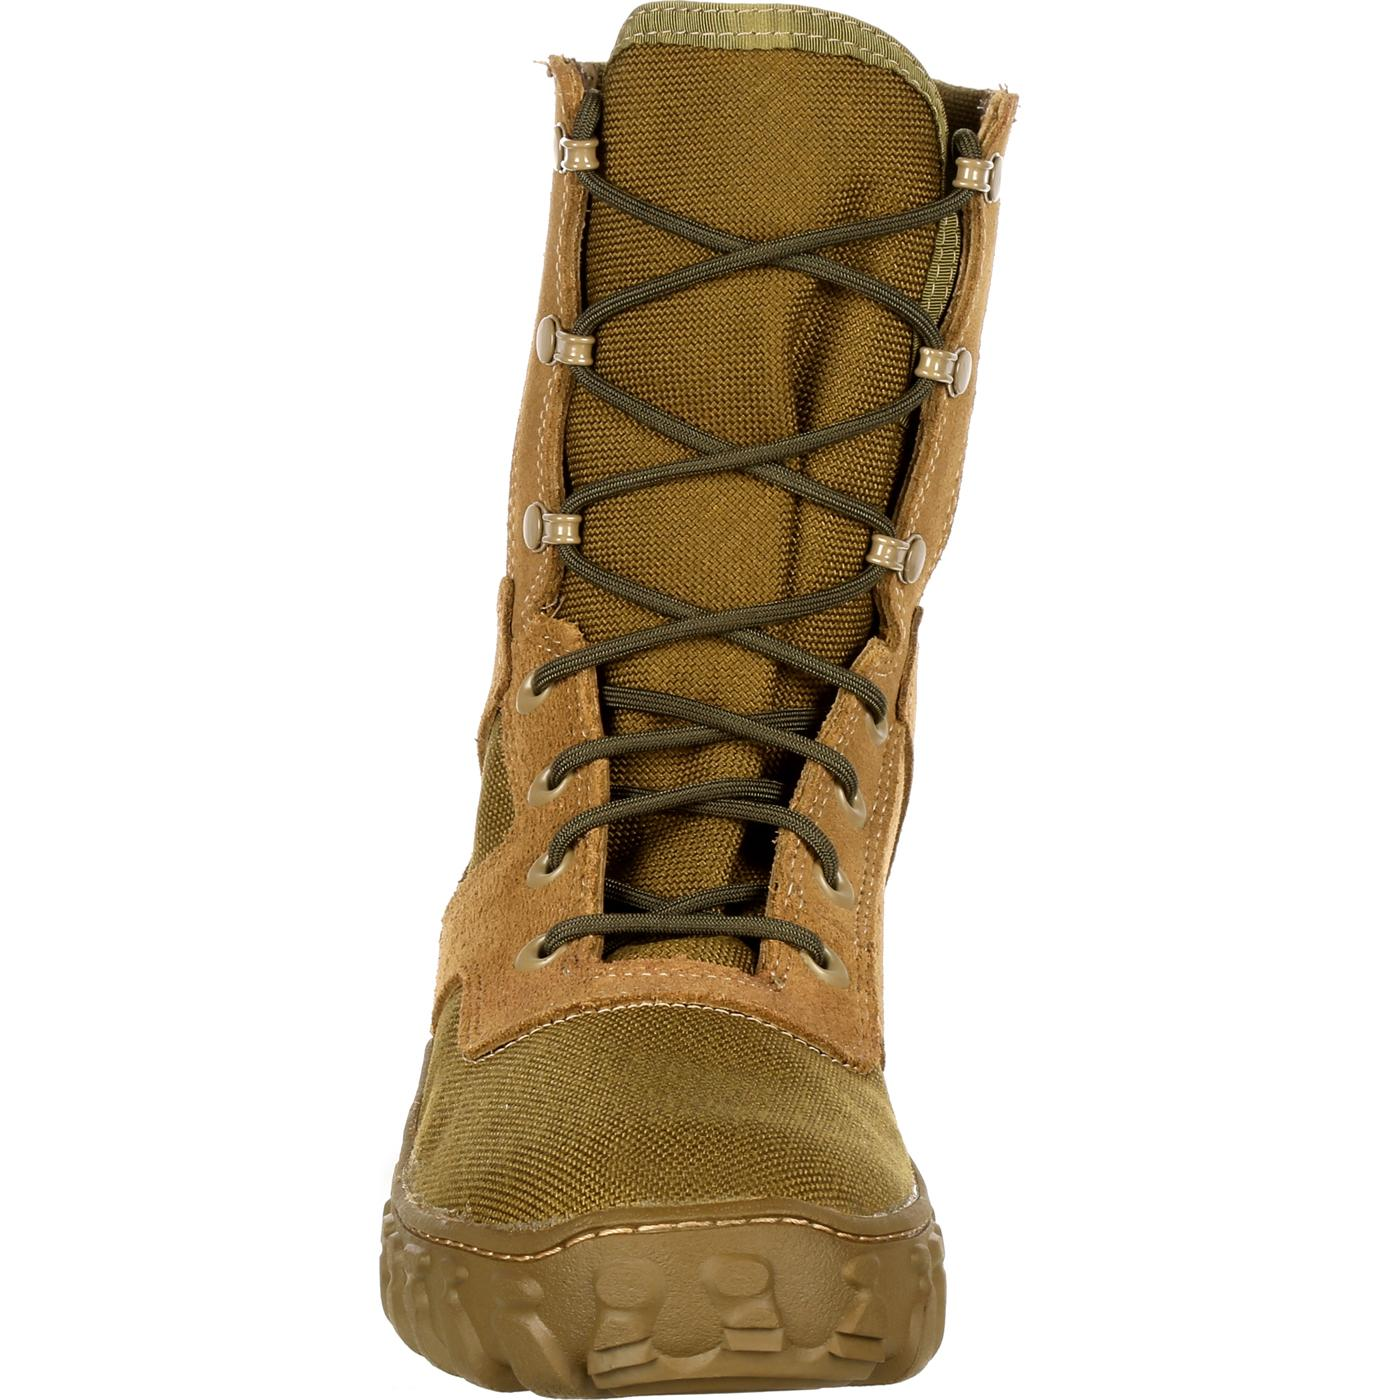 Rocky S2V Men's Military Jungle Boots, style #FQ0000106